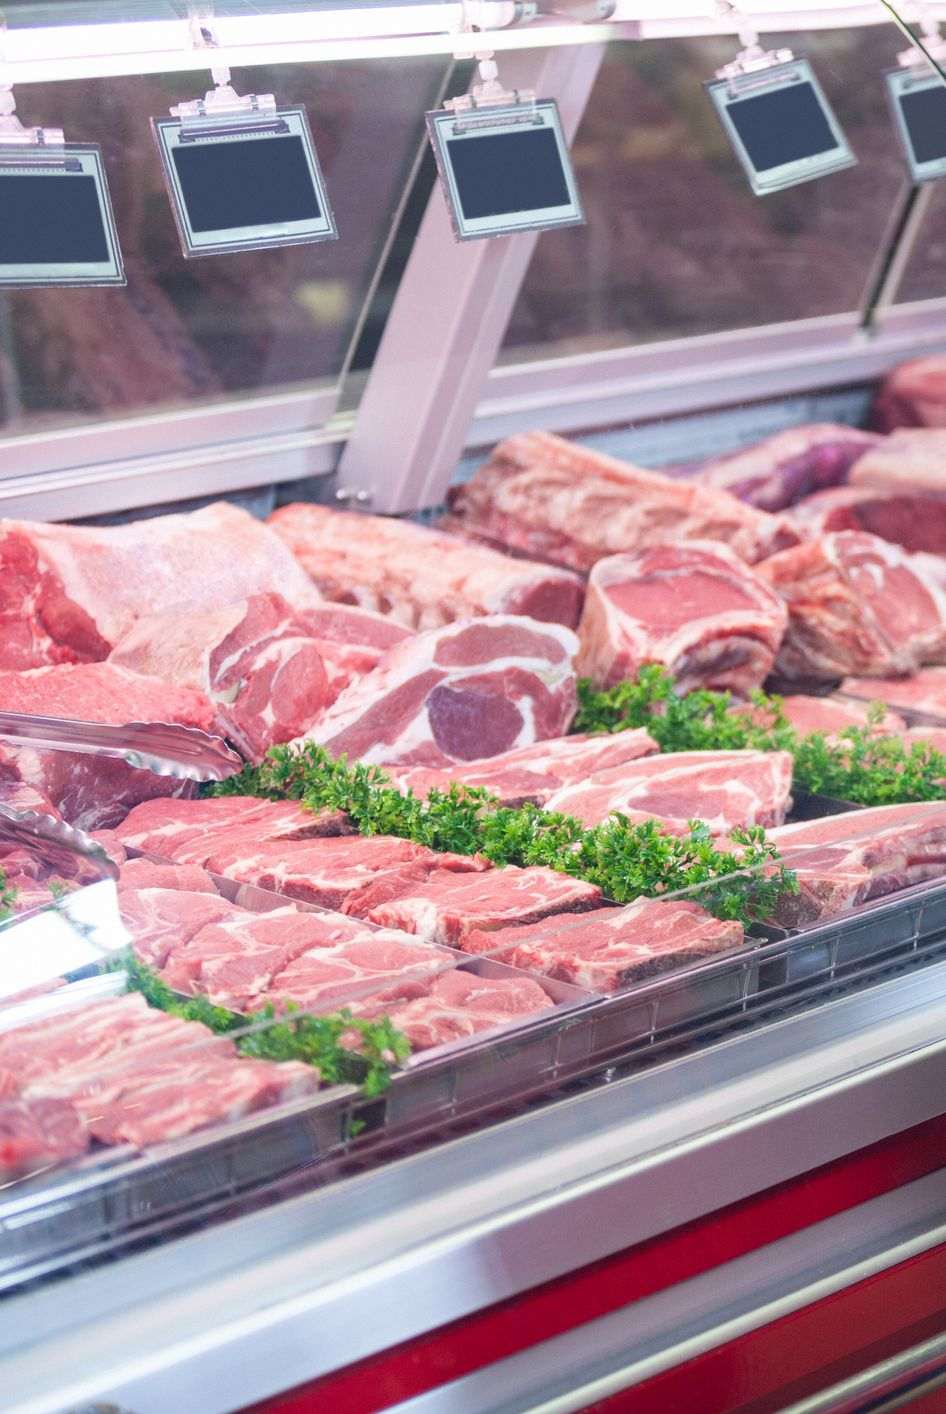 Woman pointing at meat in display